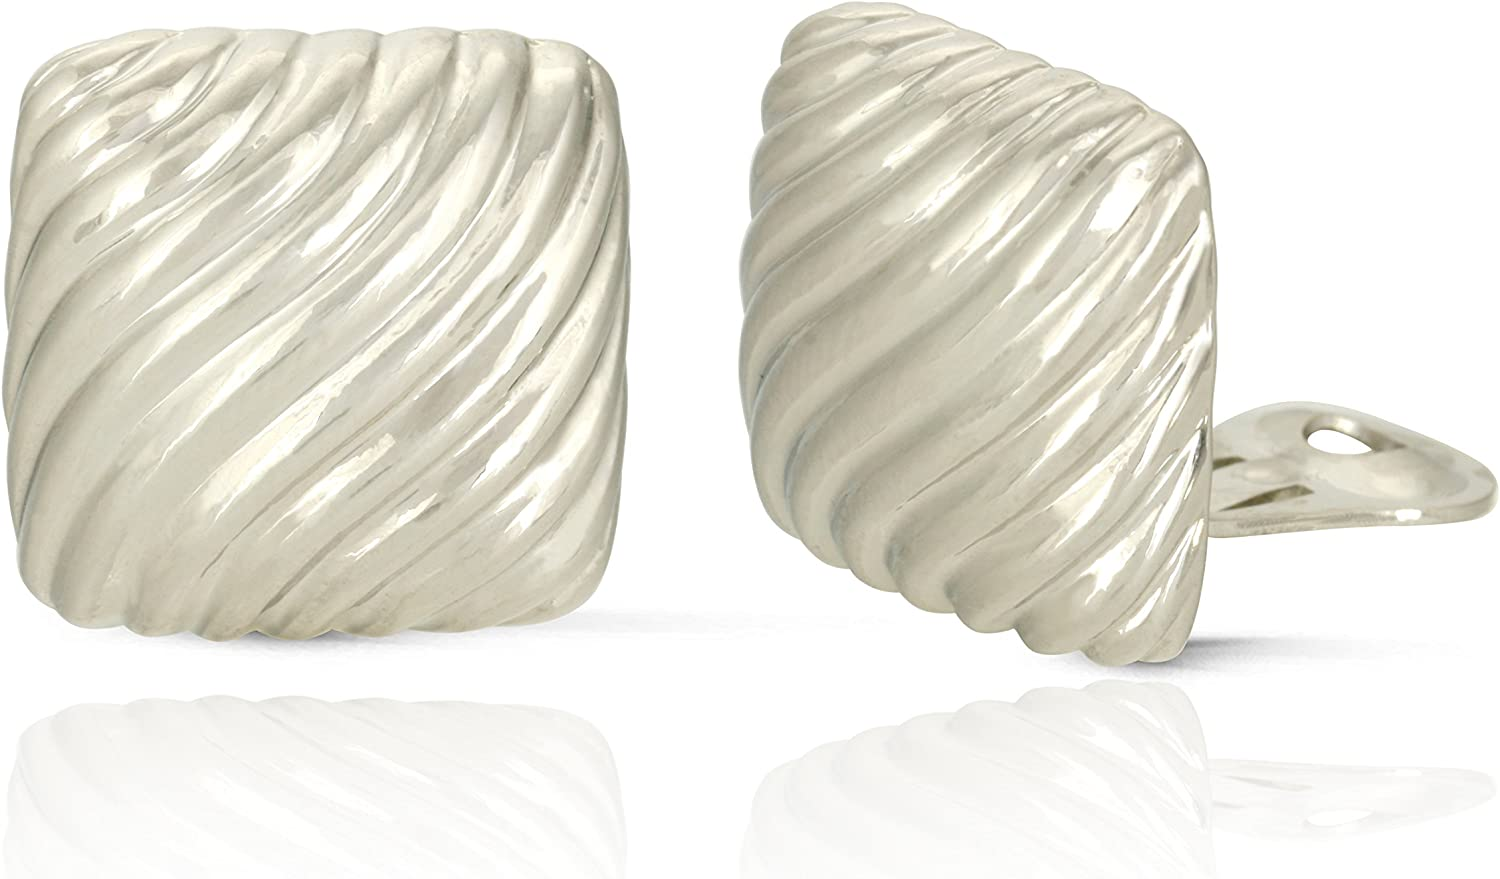 JanKuo Jewelry Rhodium Plated Square Wave Shining Polished Clip On Earrings